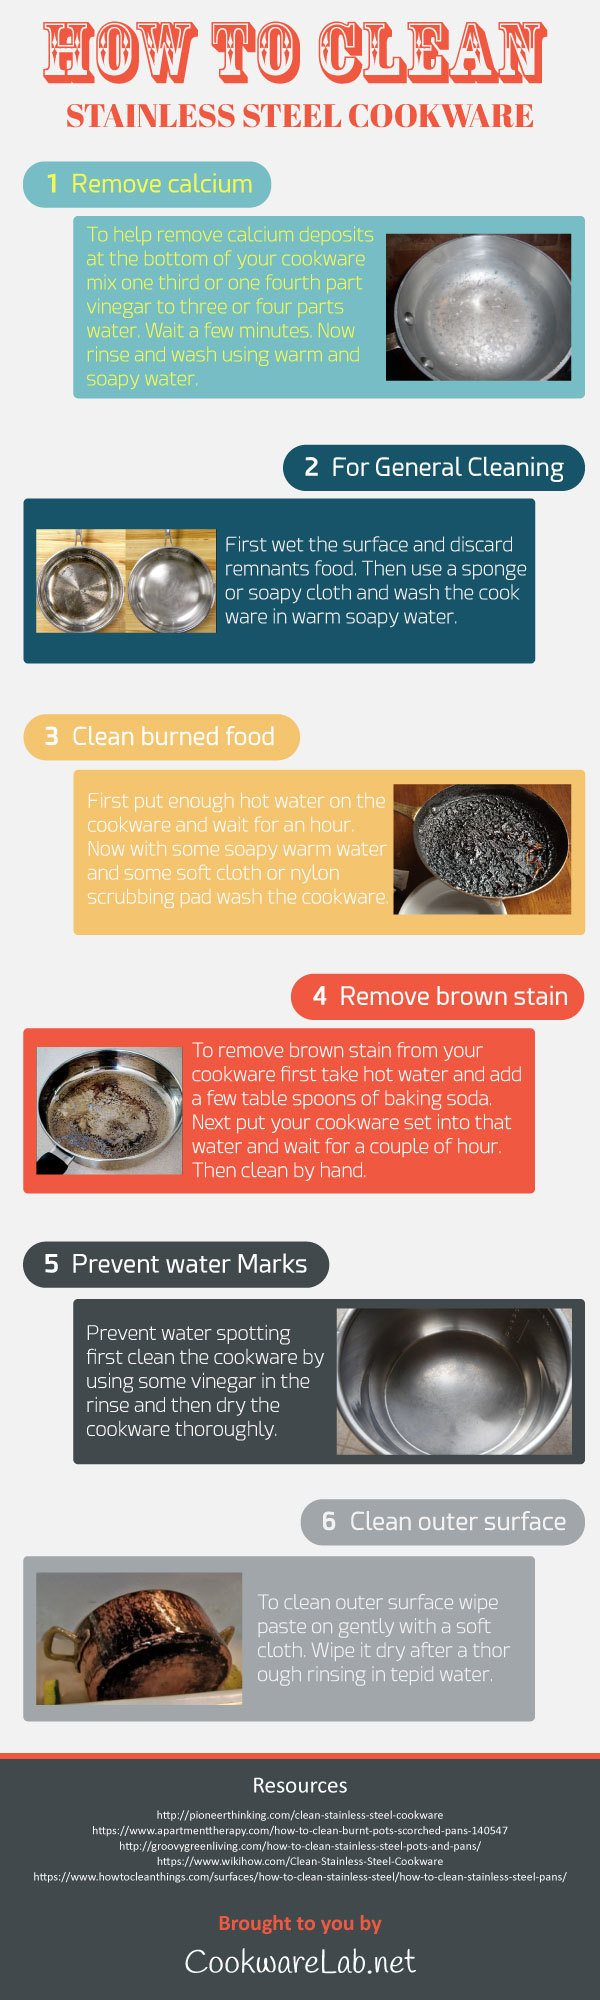 HOW-TO-CLEAN-STAINLESS-STEEL-COOKWARE